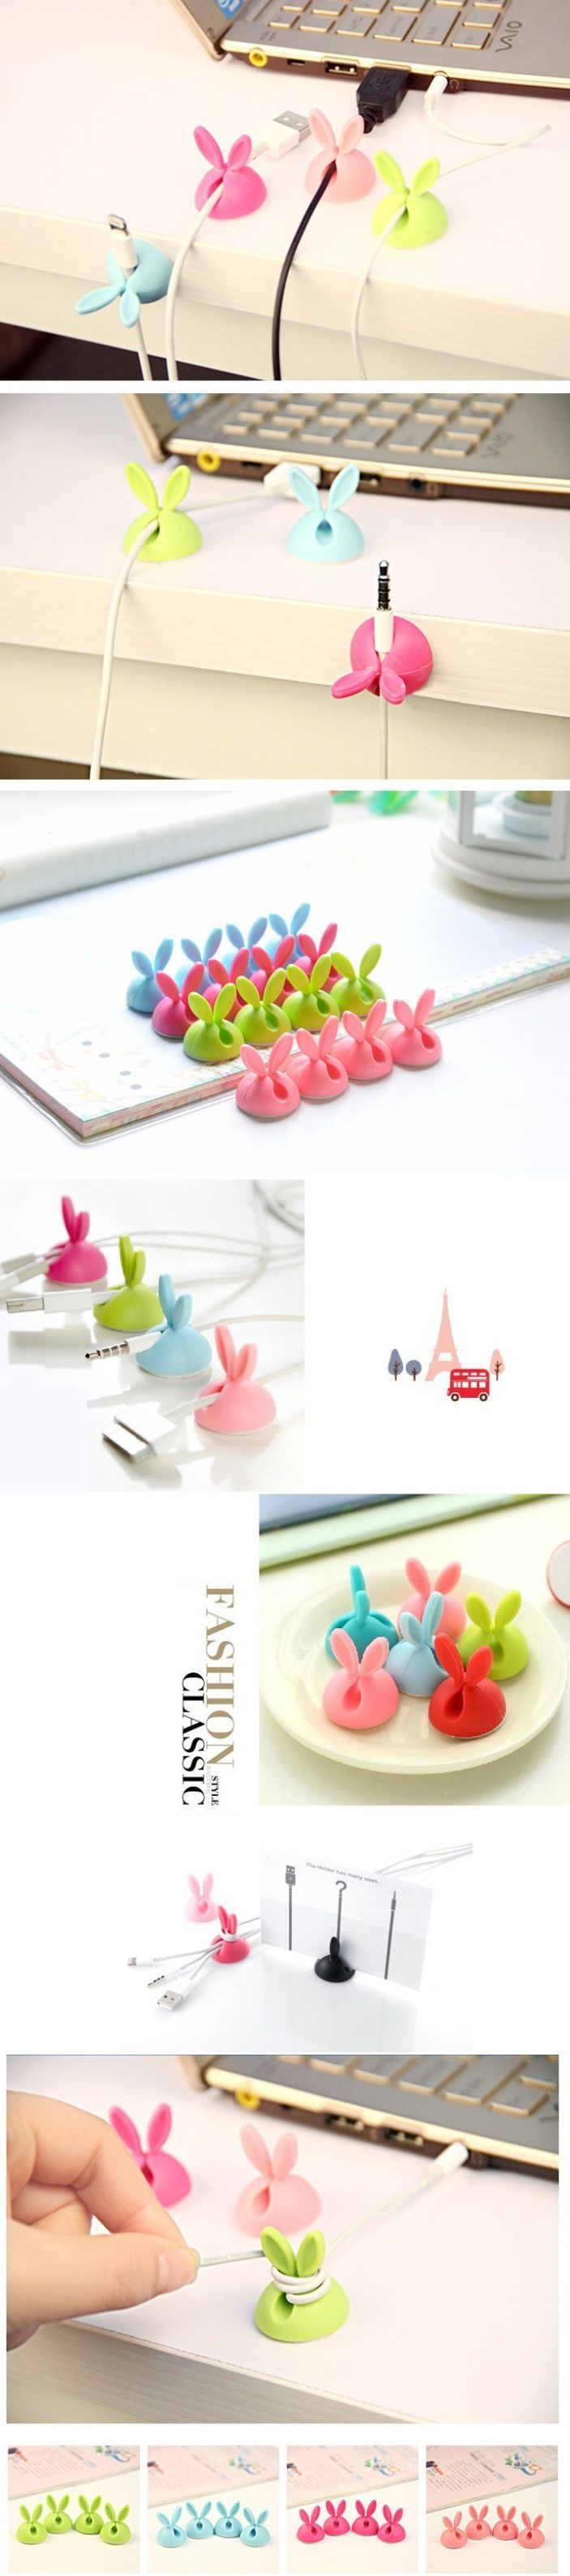 INFMETRY:: Rabbit Cable Holder - Gadget - Electronics